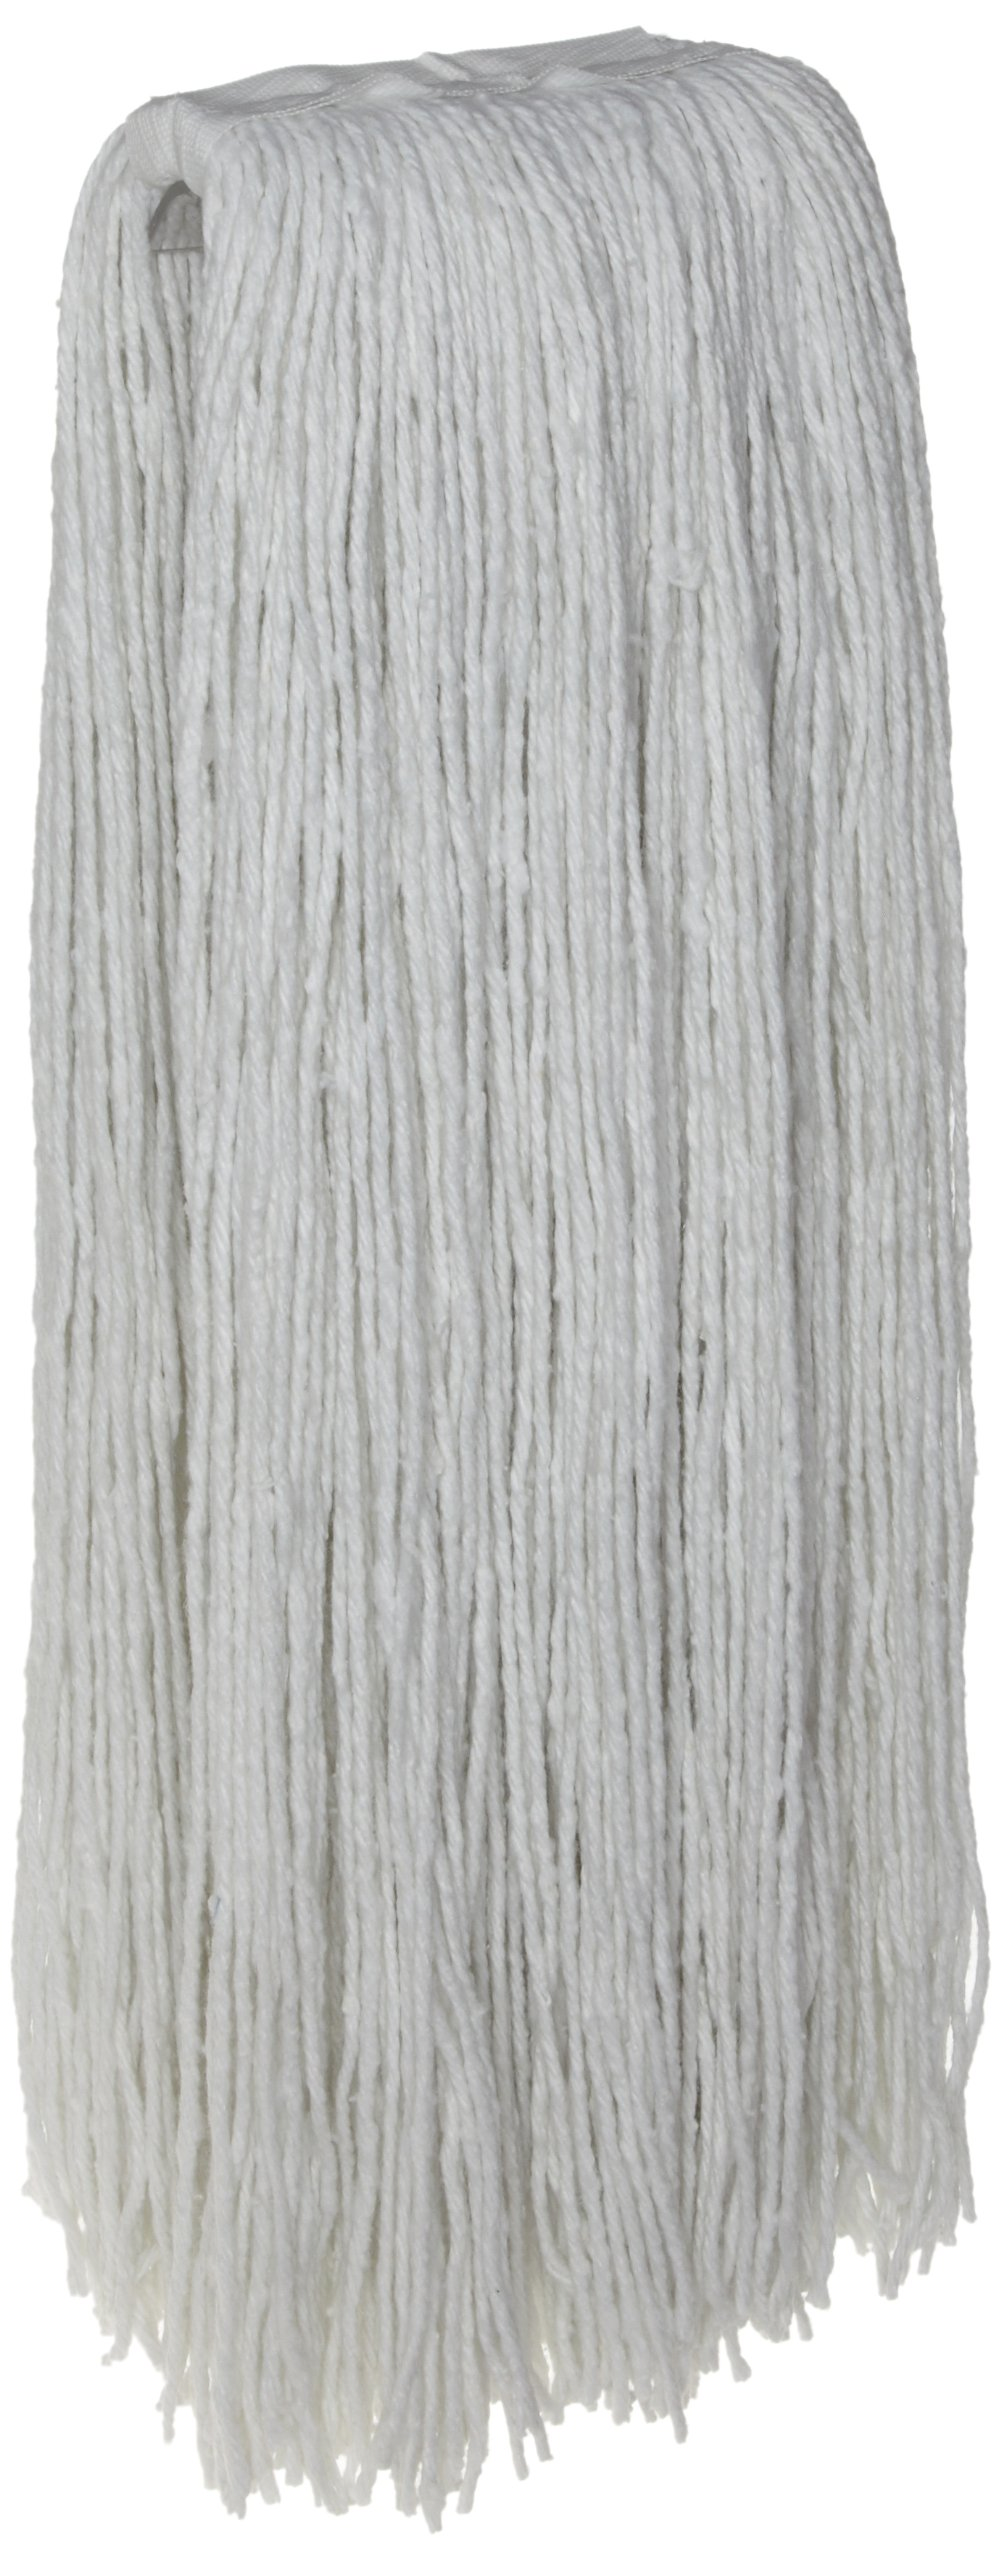 Zephyr 10516 Rayon 4-Ply 16oz Cut End Wet Mop Head with 1-1/4'' Regular Headband (Pack of 12)